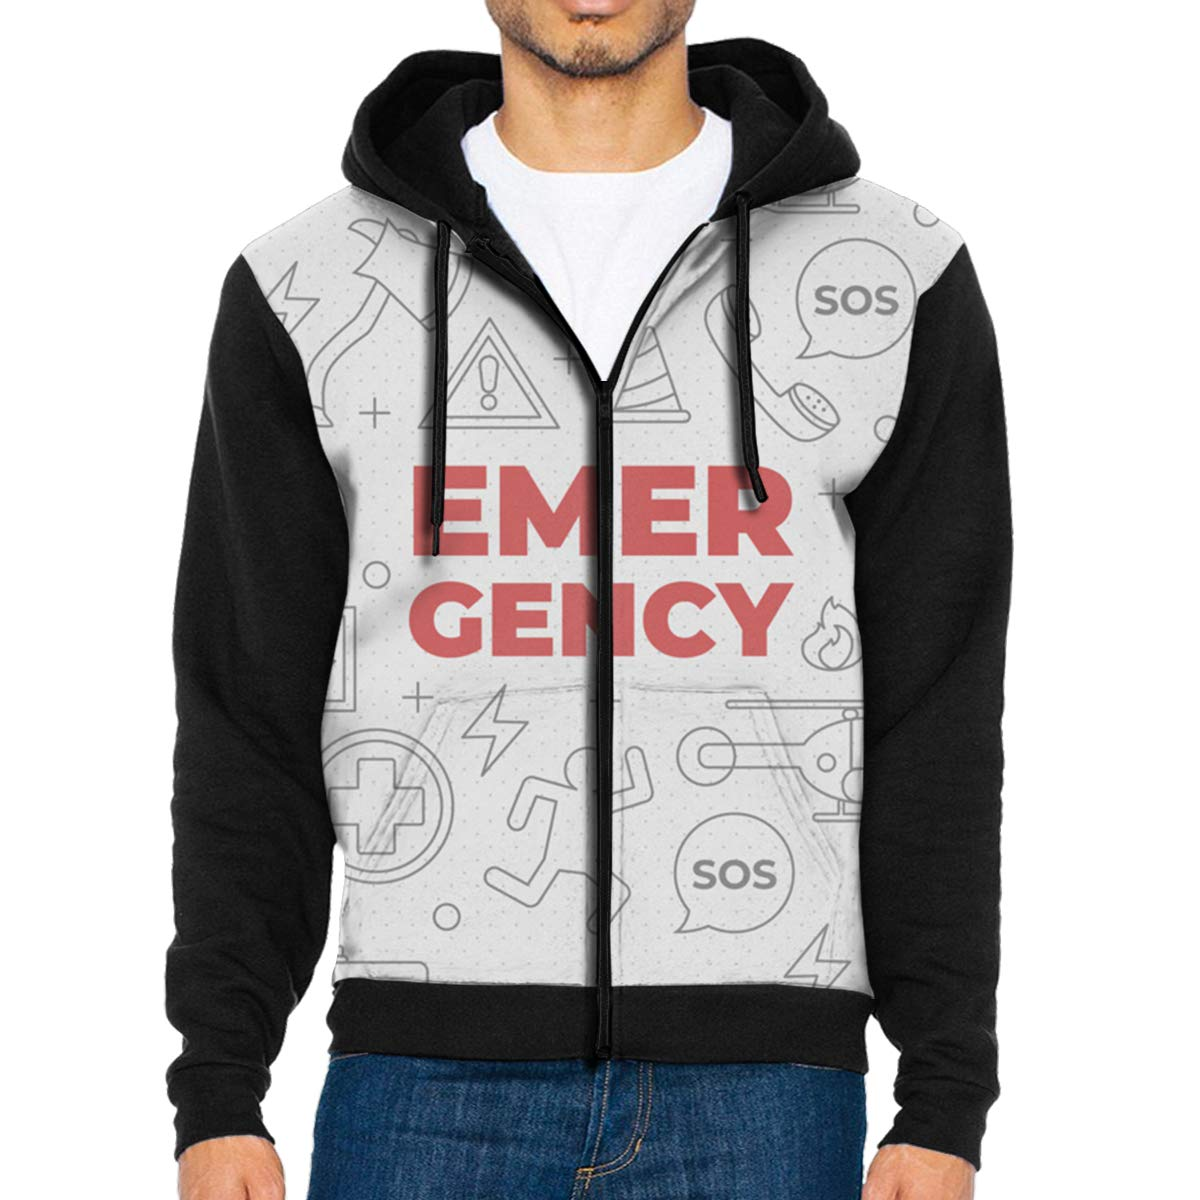 MHBGMYES Emergency Word Concept Lightweight Mans Jacket with Hood Long Sleeved Zippered Outwear